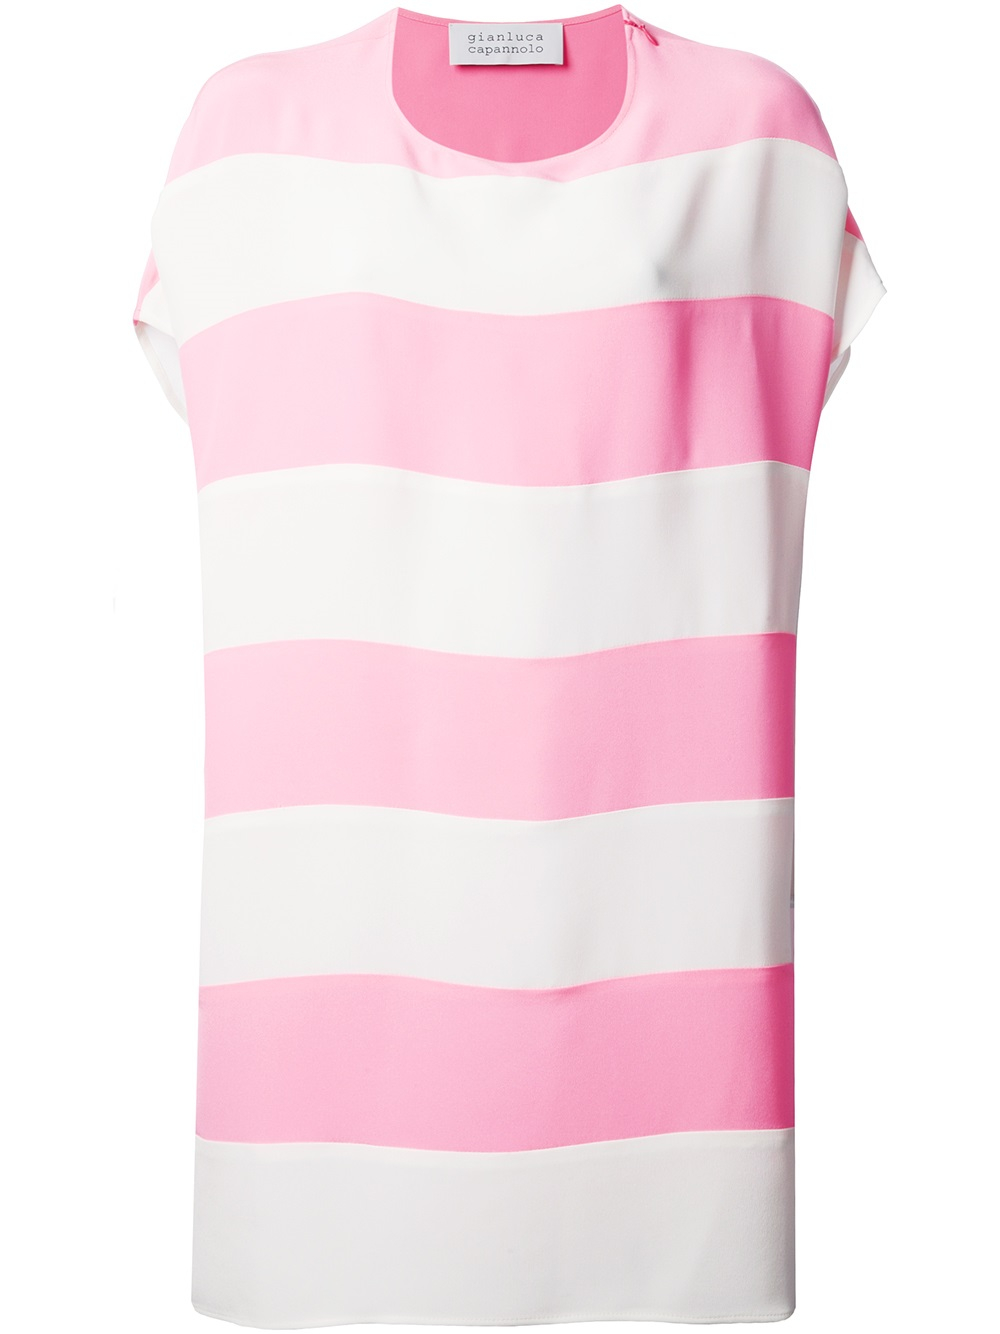 Lyst gianluca capannolo striped tshirt dress in pink for Pink white striped shirt